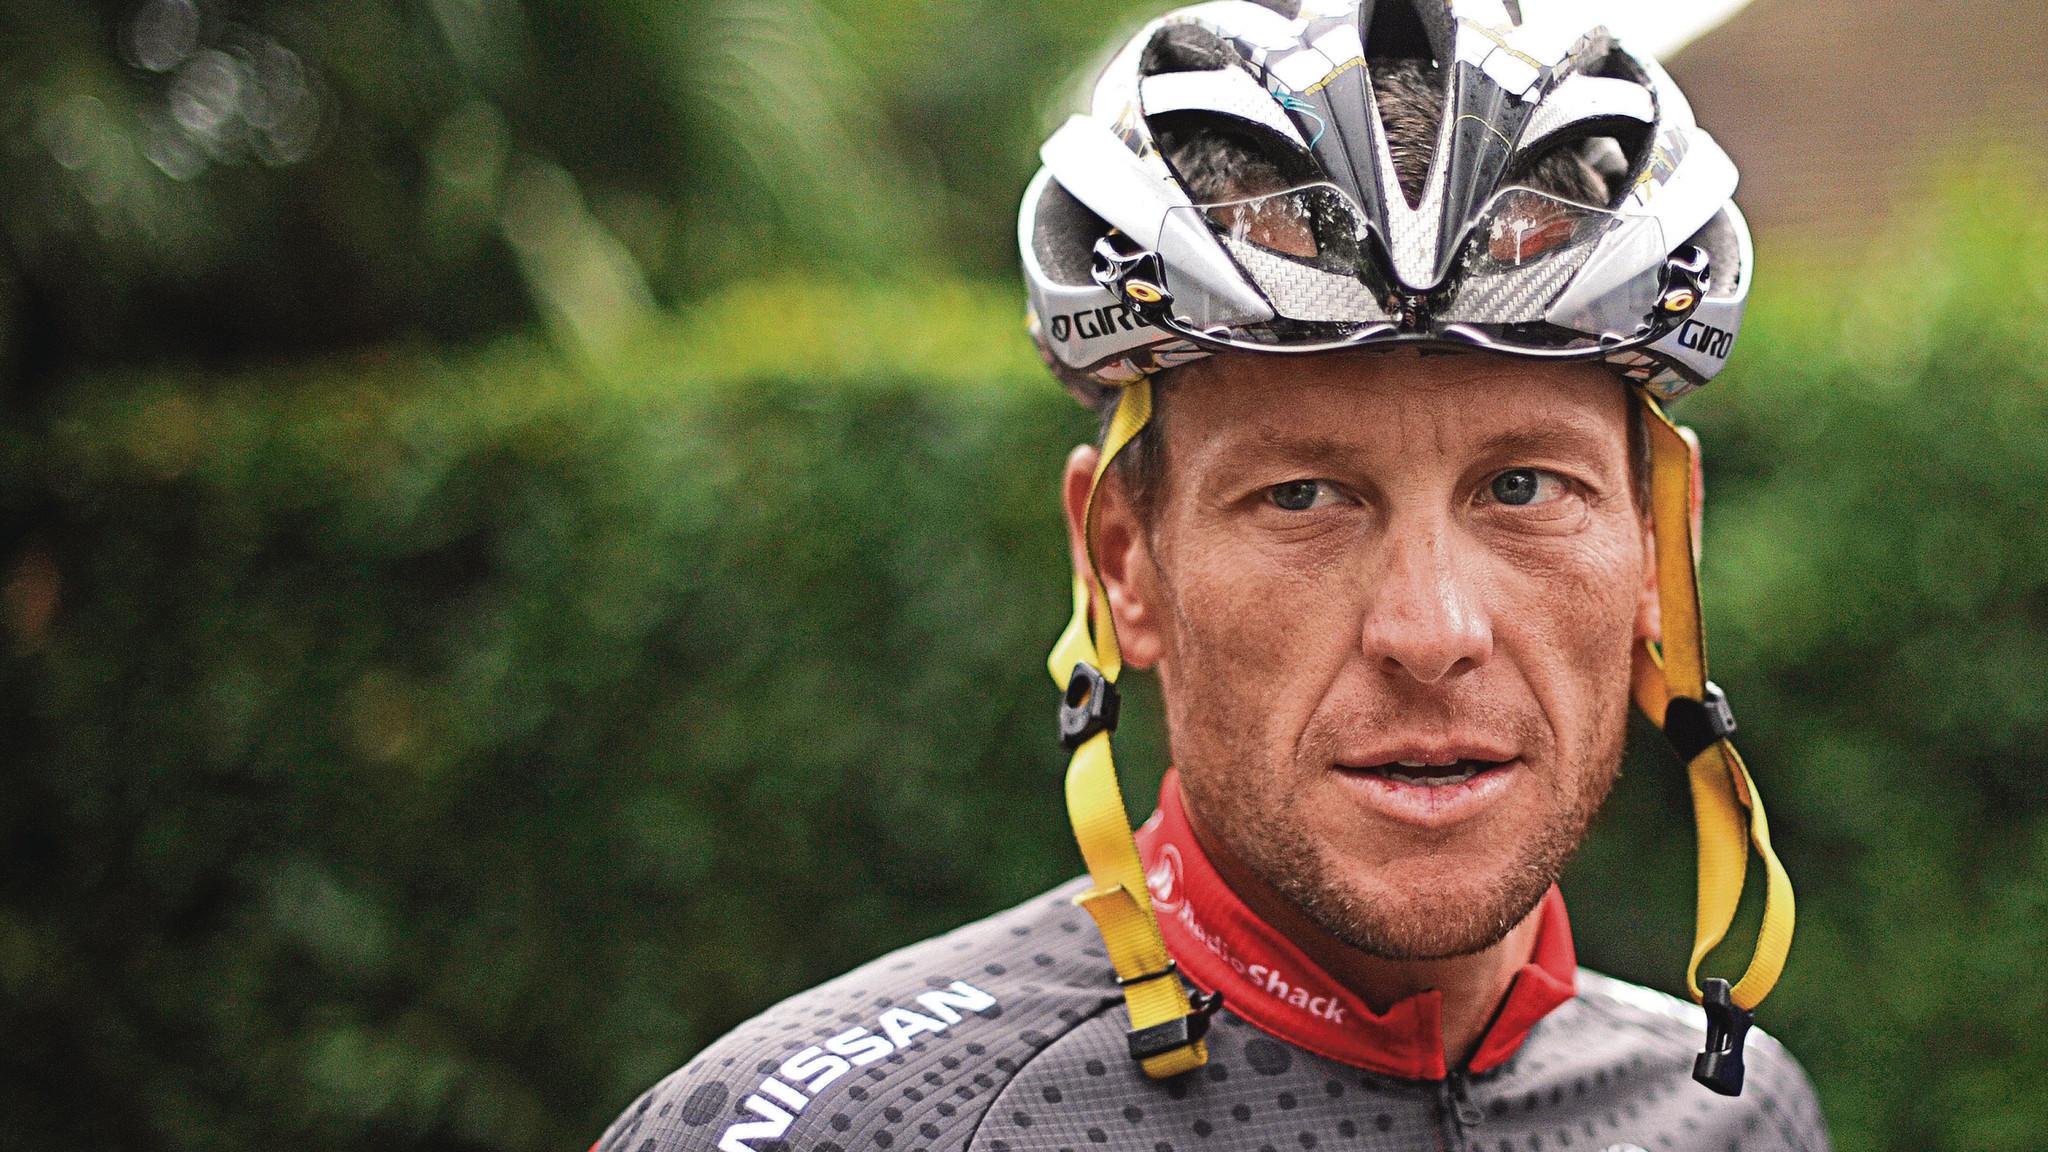 Lance Armstrong just backed a Carlsbad fitness startup. Here's why